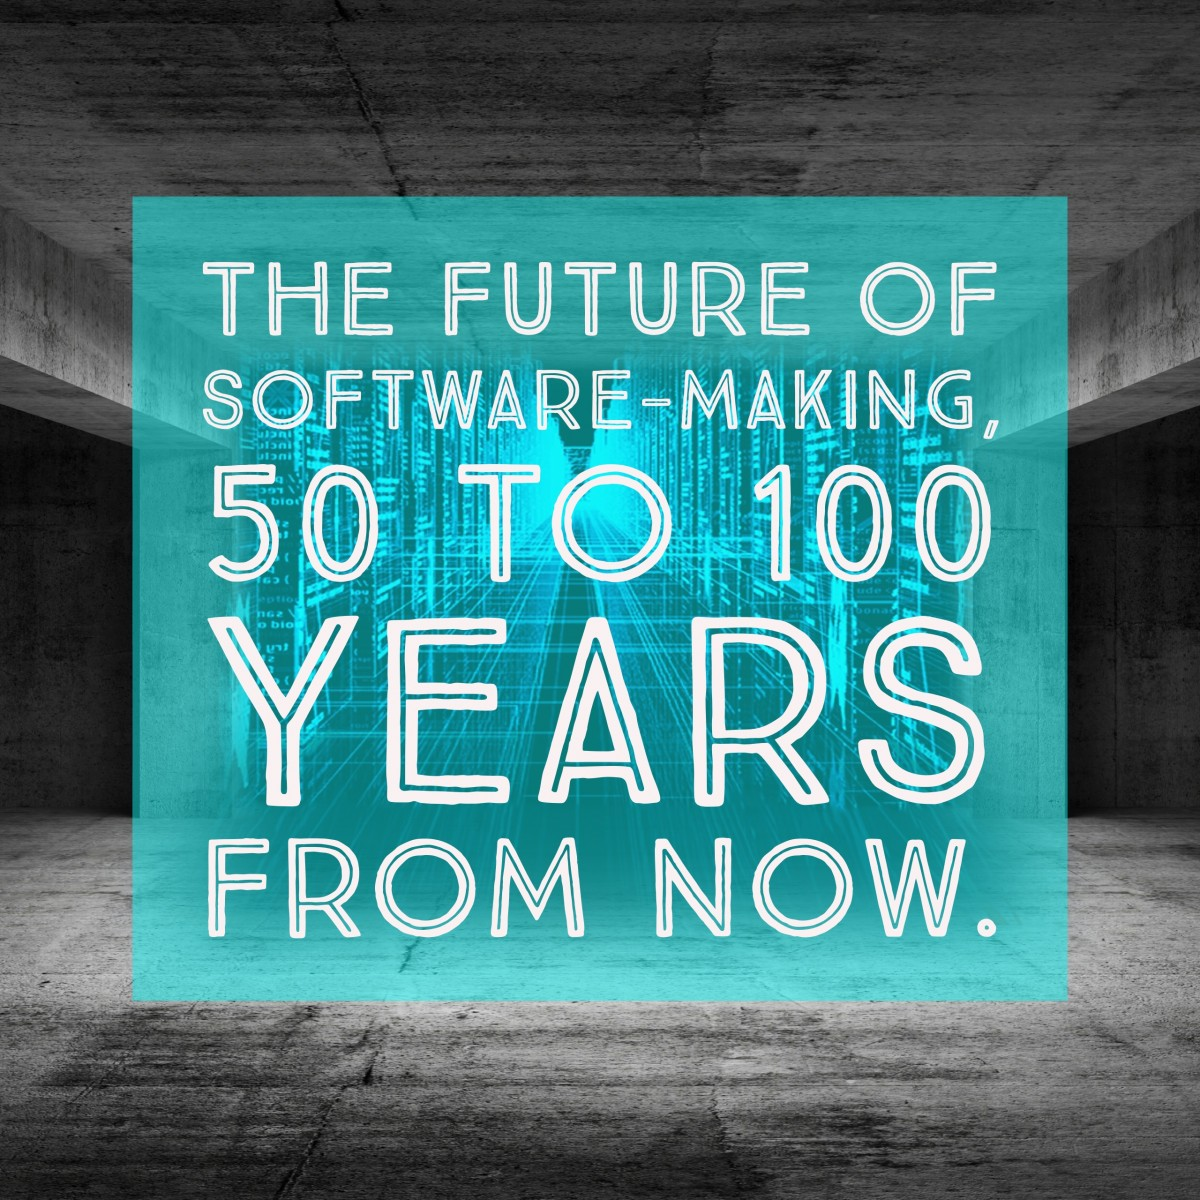 The Future of Software-Making, 50 to 100 Years From Now